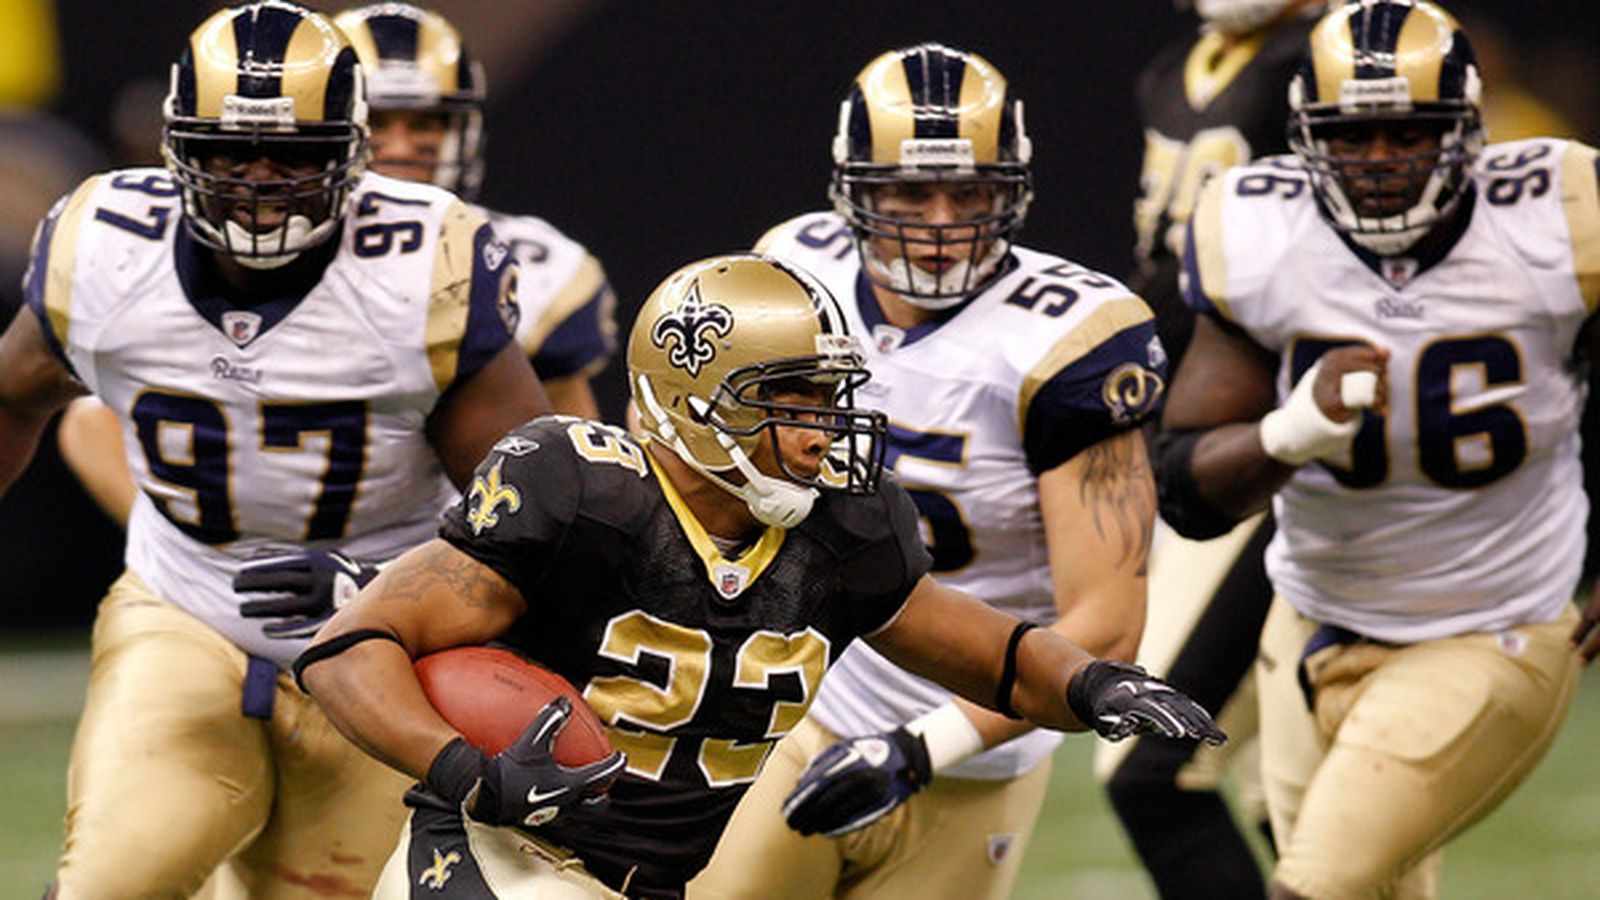 Saints Vs Rams 2013 Open Discussion Thread Canal Street